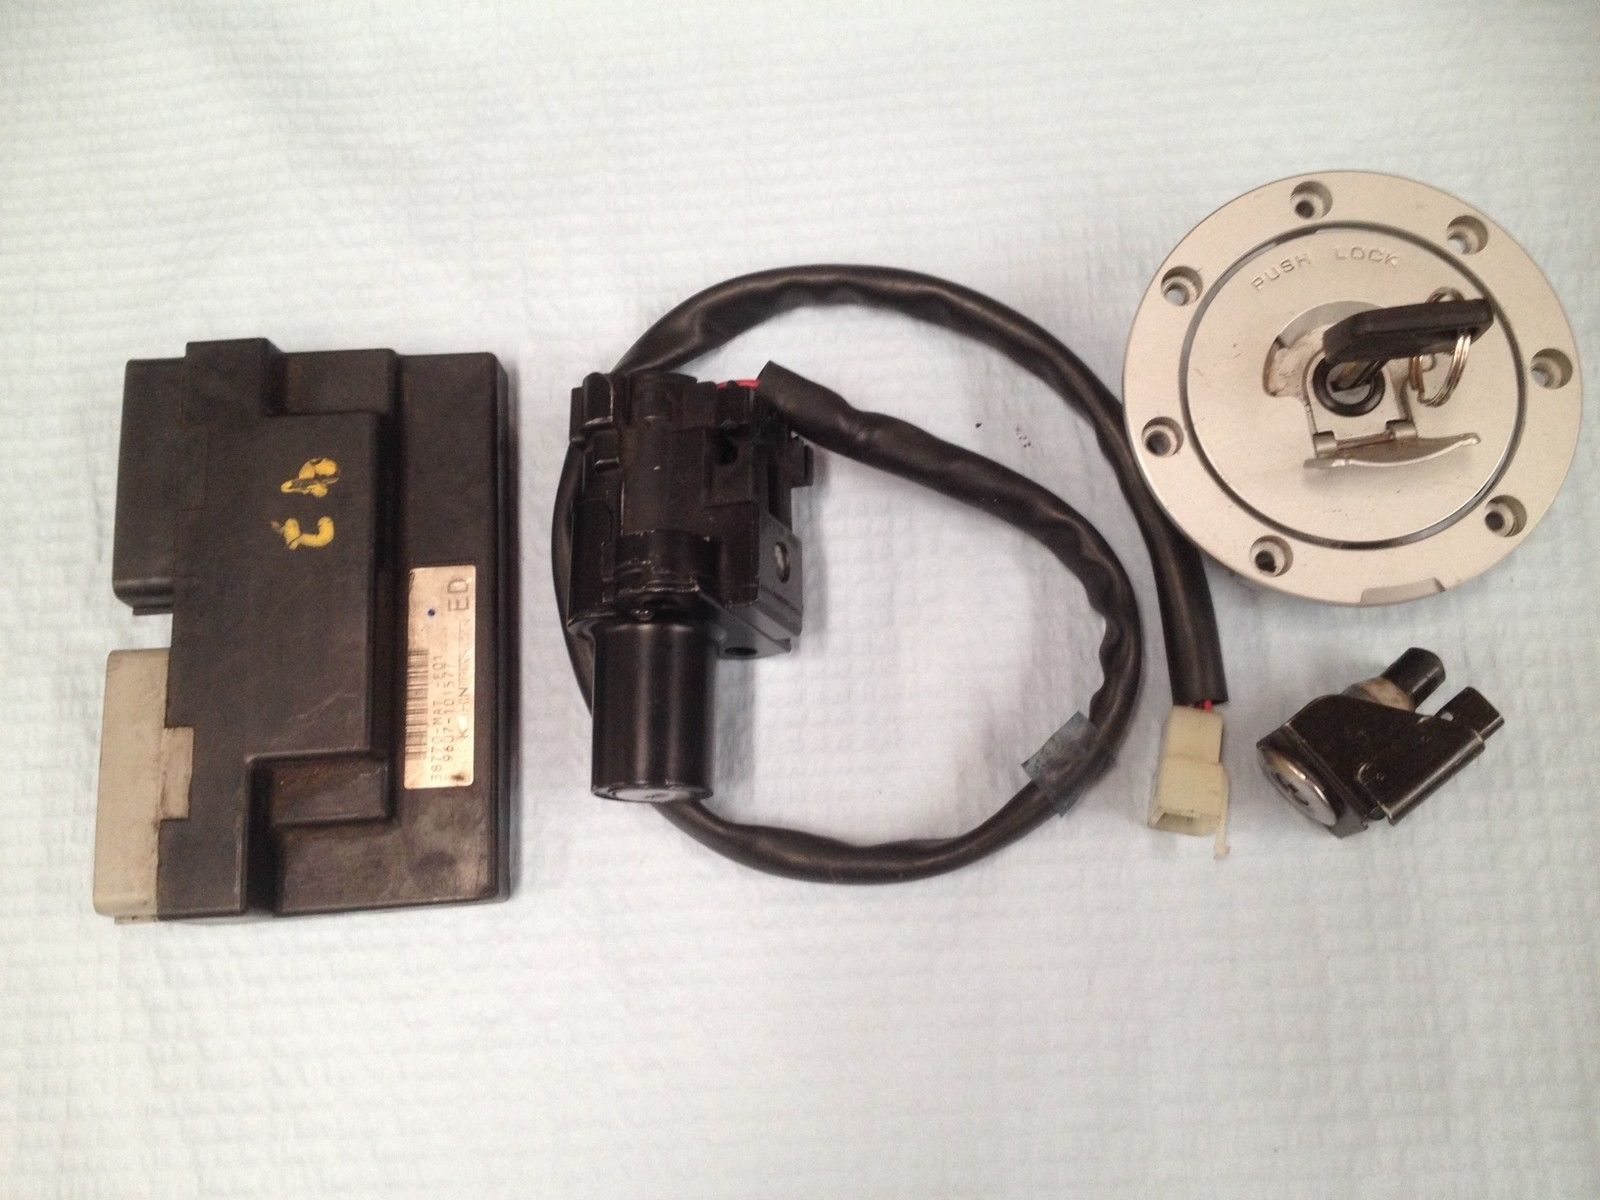 Honda CBR1100XX 99-00 ECU, ignition and tank lock with coded key HISS